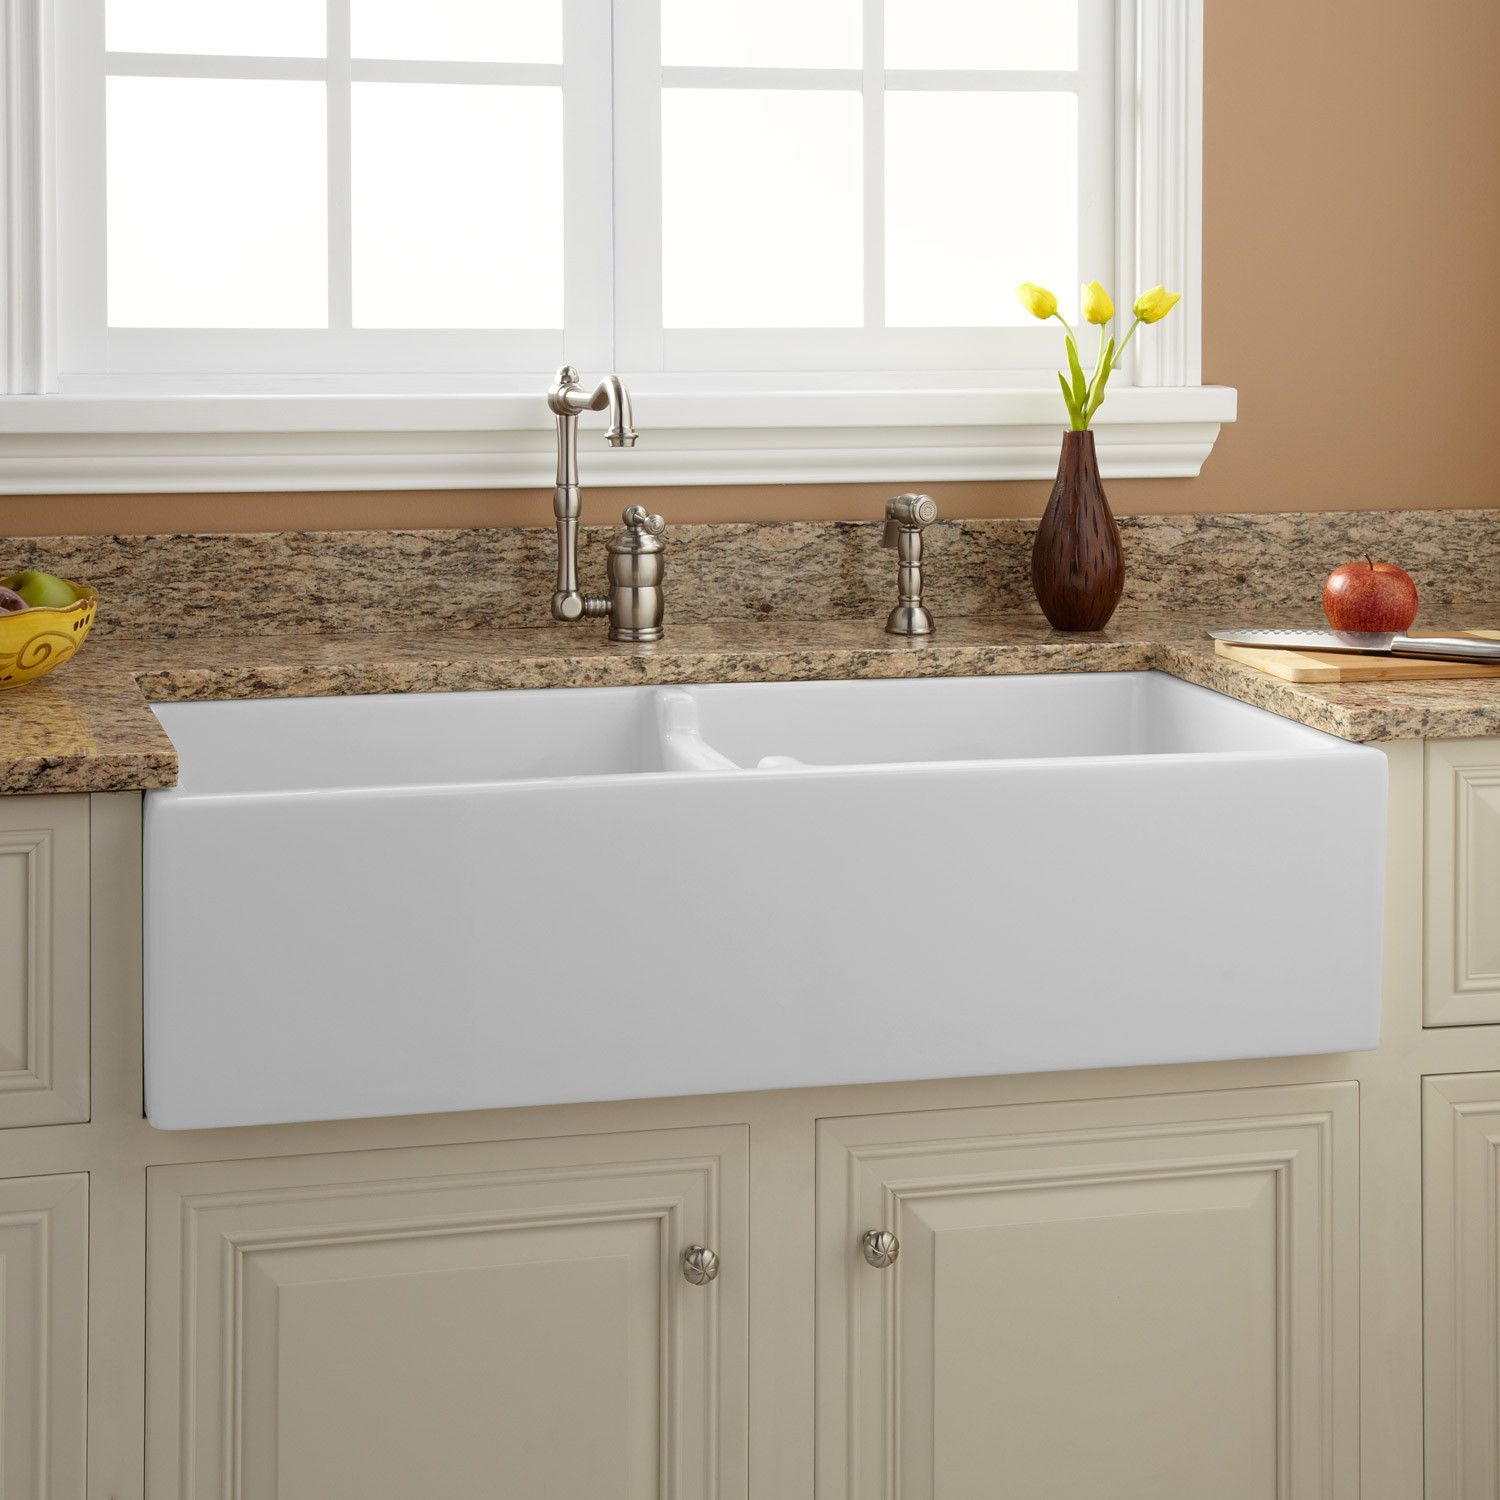 white kitchen sink home depot storage cabinets 39 quot risinger double bowl fireclay farmhouse